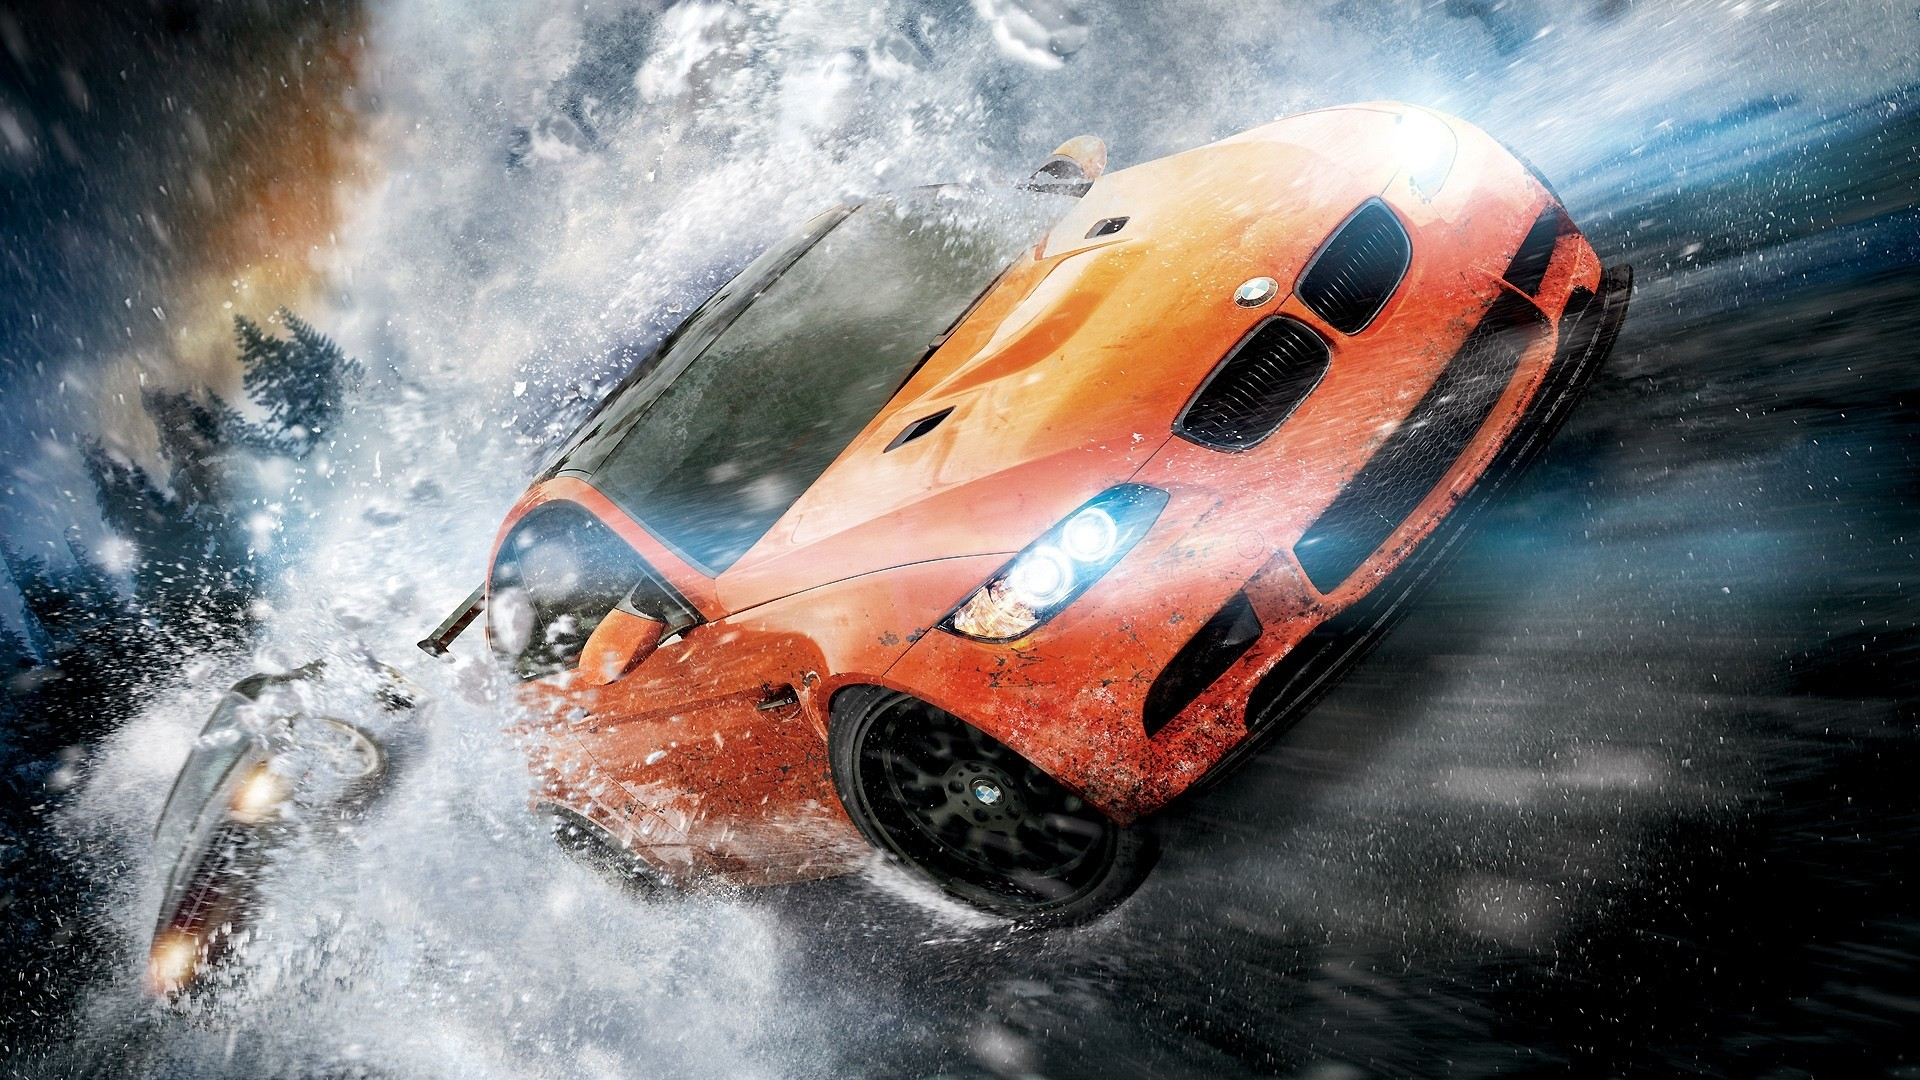 Wallpaper nfs, need for speed, bmw, snow, speed, road